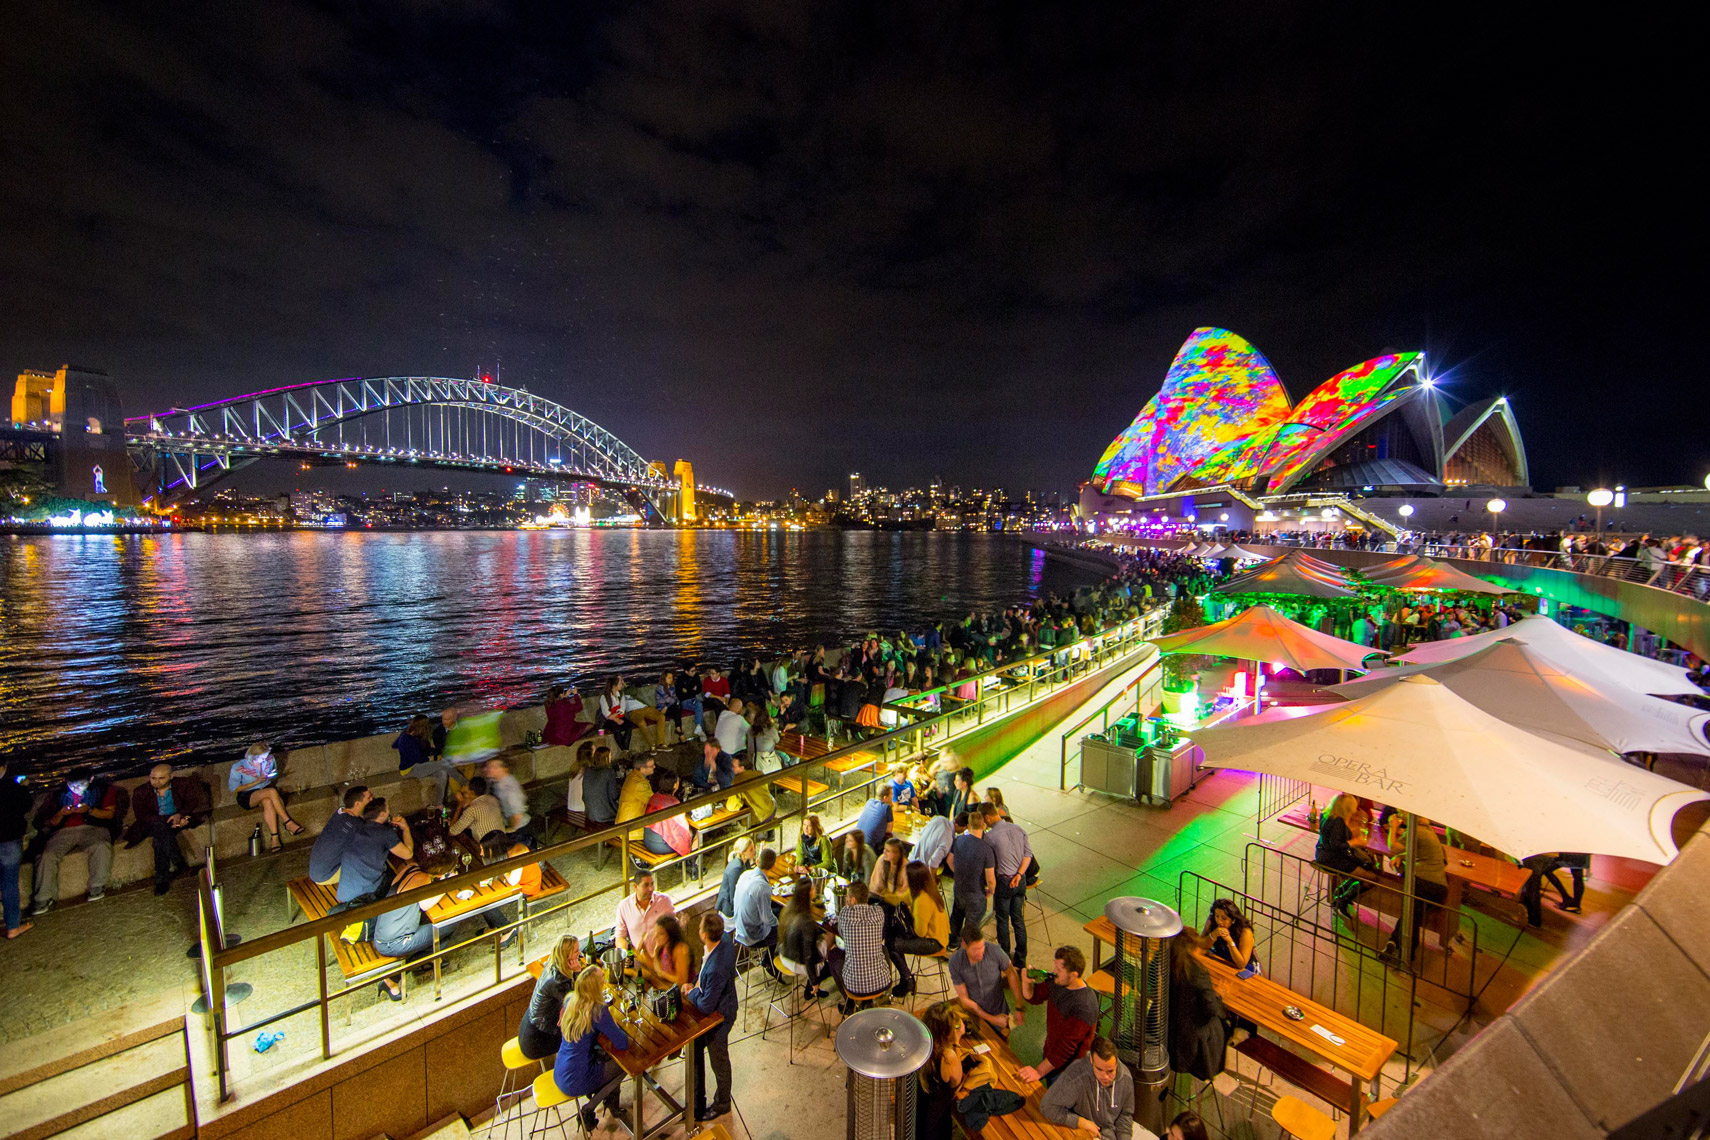 Vivid-Sydney-2014_Lighting-the-sails_Opera-Bar_James-Horan_DNSW_779